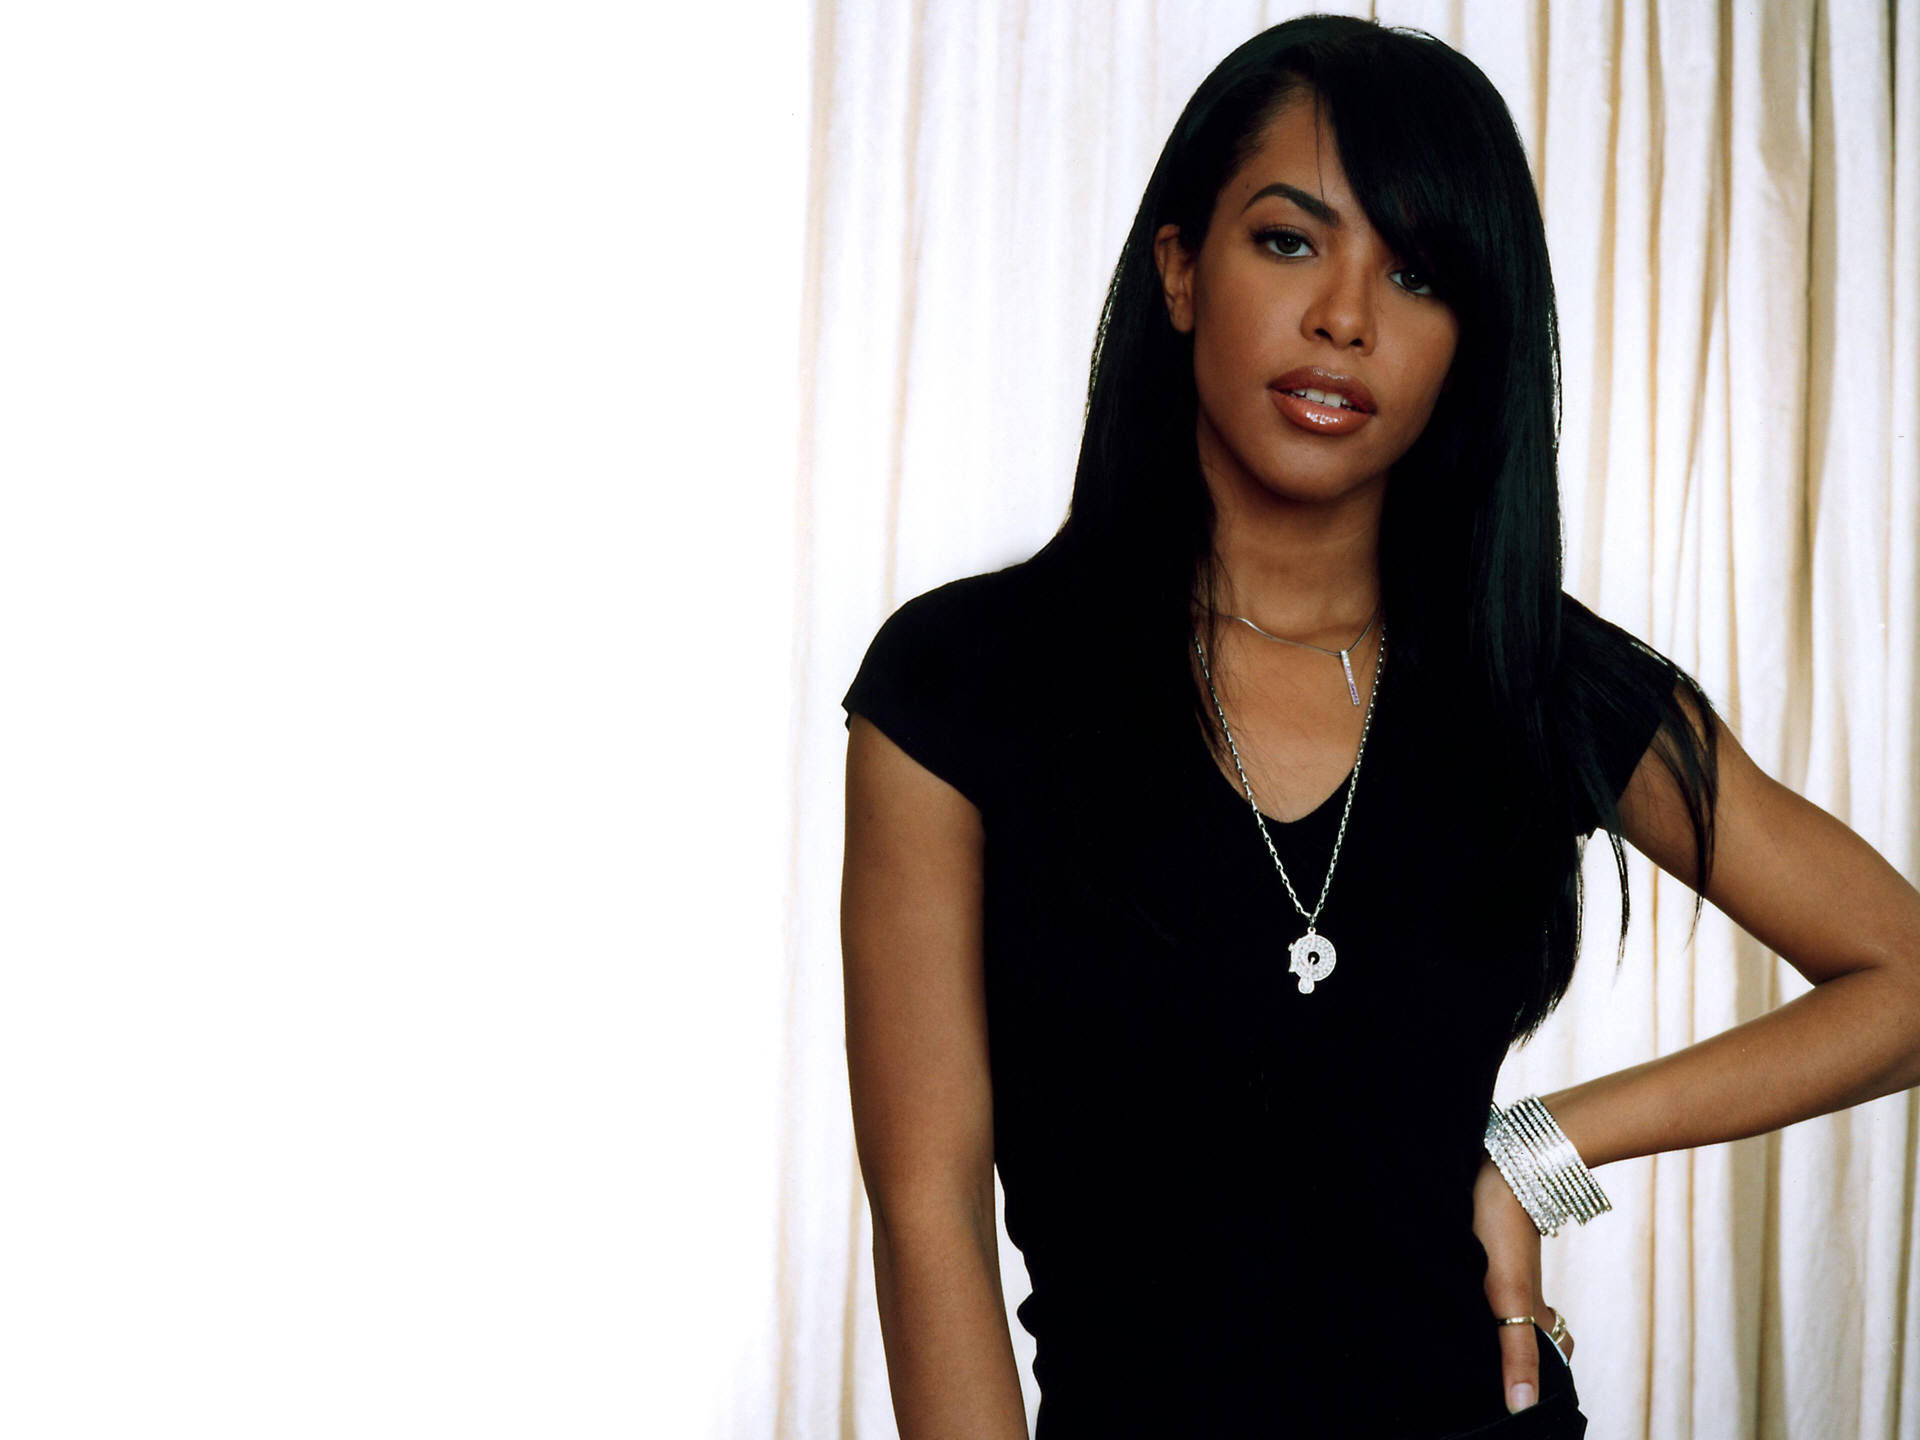 Aaliyah began recording the album in 1998 She recorded a few songs including two with longtime collaborator Timbaland before working on Romeo Must Die In 1999